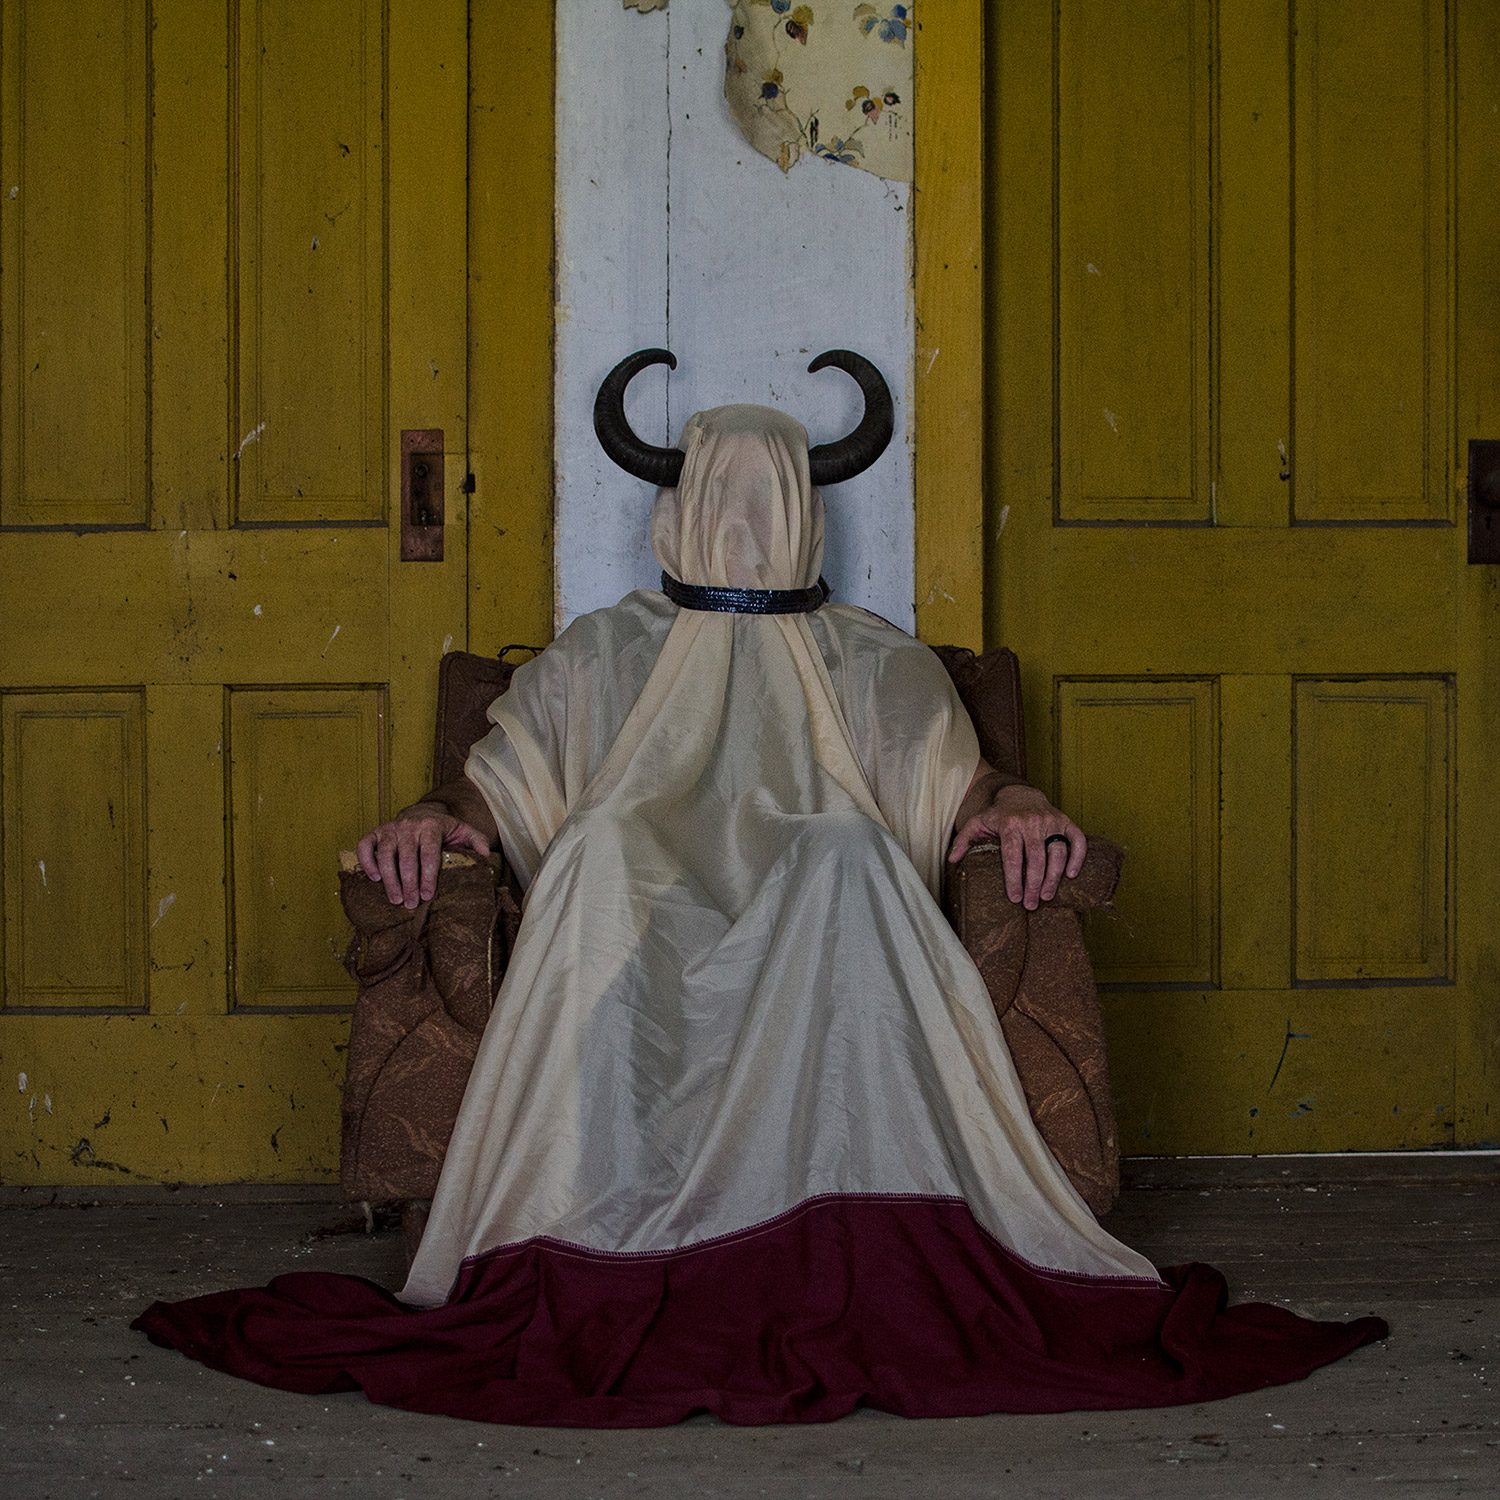 Christopher McKenney - horned figure in cloak